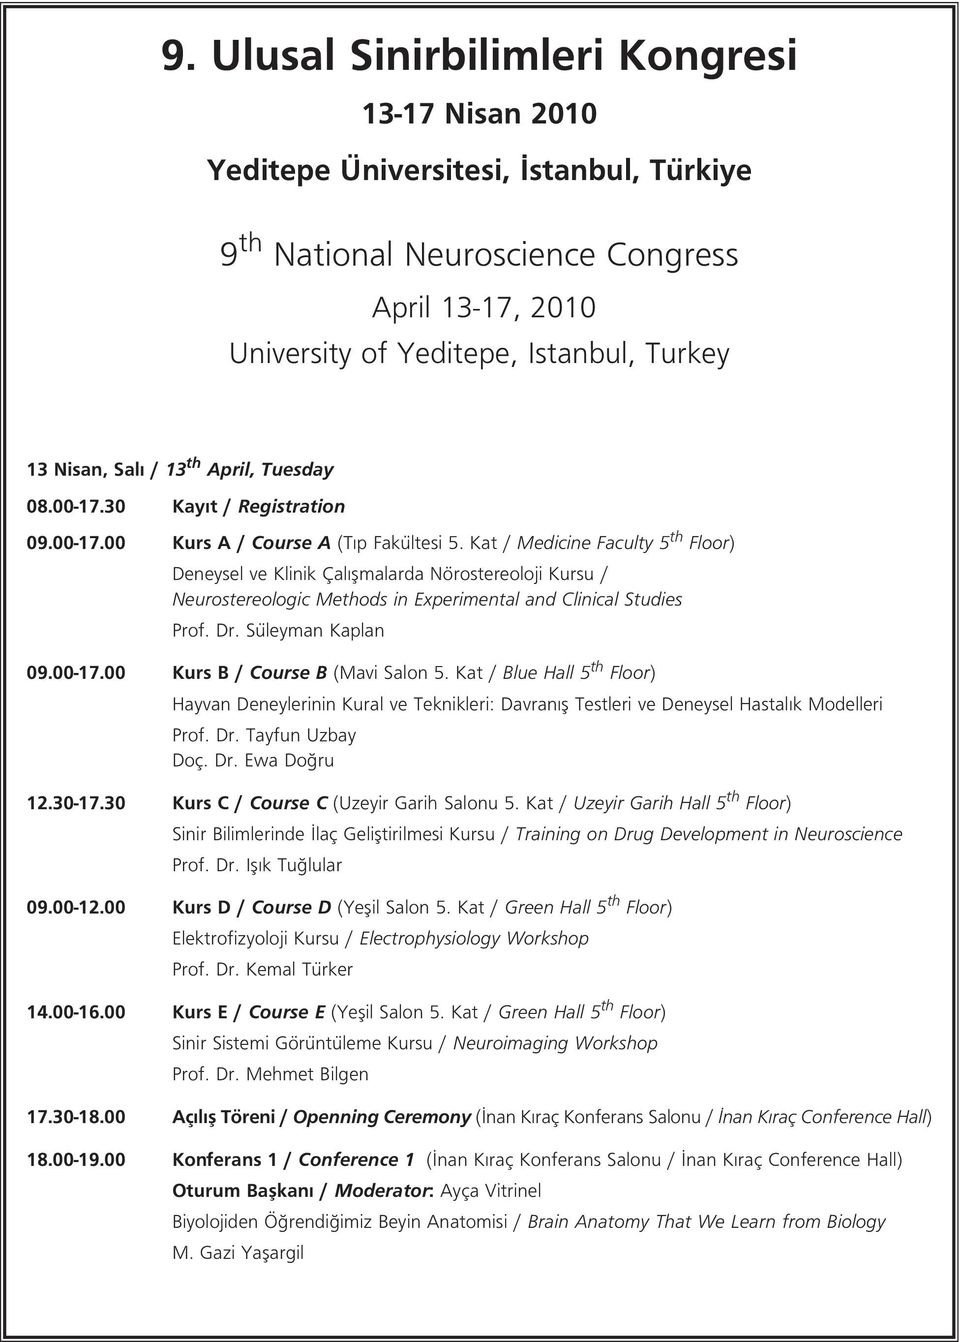 Kat / Medicine Faculty 5 th Floor) Deneysel ve Klinik Çal flmalarda Nörostereoloji Kursu / Neurostereologic Methods in Experimental and Clinical Studies Prof. Dr. Süleyman Kaplan 09.00-17.